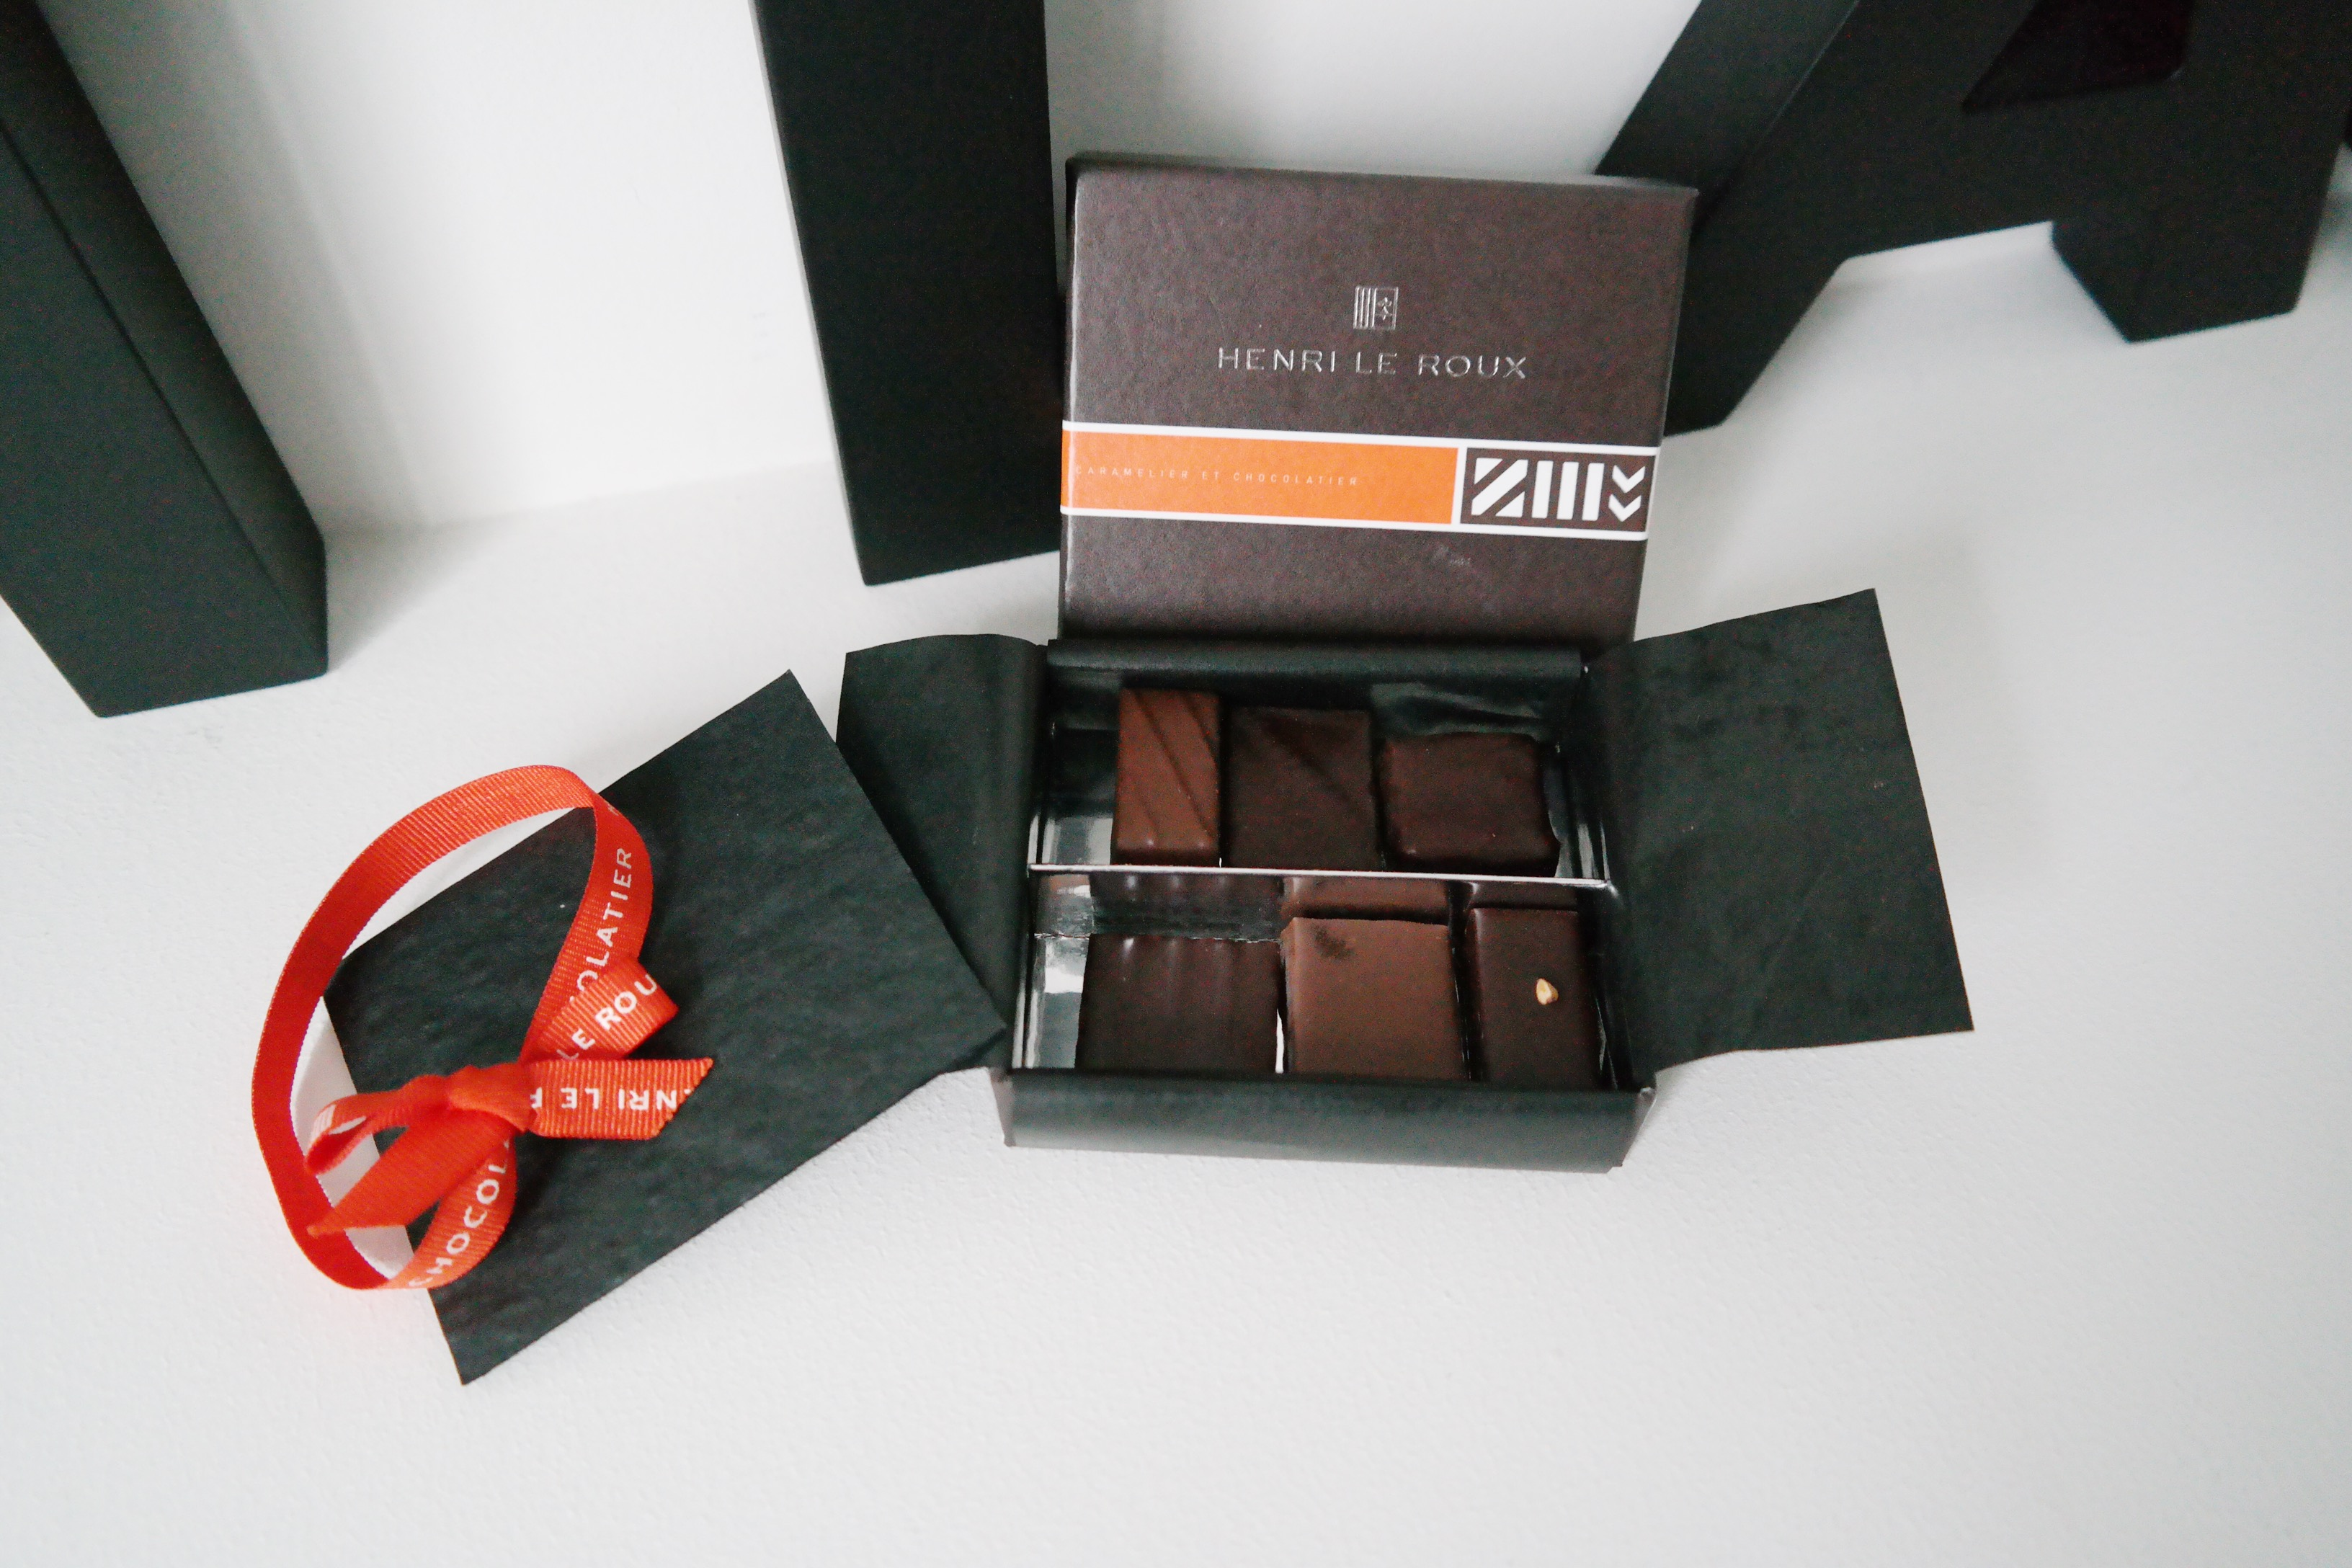 Maison-Henri-Le-Roux-Paris-Quiberon-Landévant-chocolatier-et-caramélier-coffret-Bretagne-sélection-chocolats-caramel-au-beurre-salé-fleur-de-sel-de-Guérande-gianduja-photo-blog-usofparis